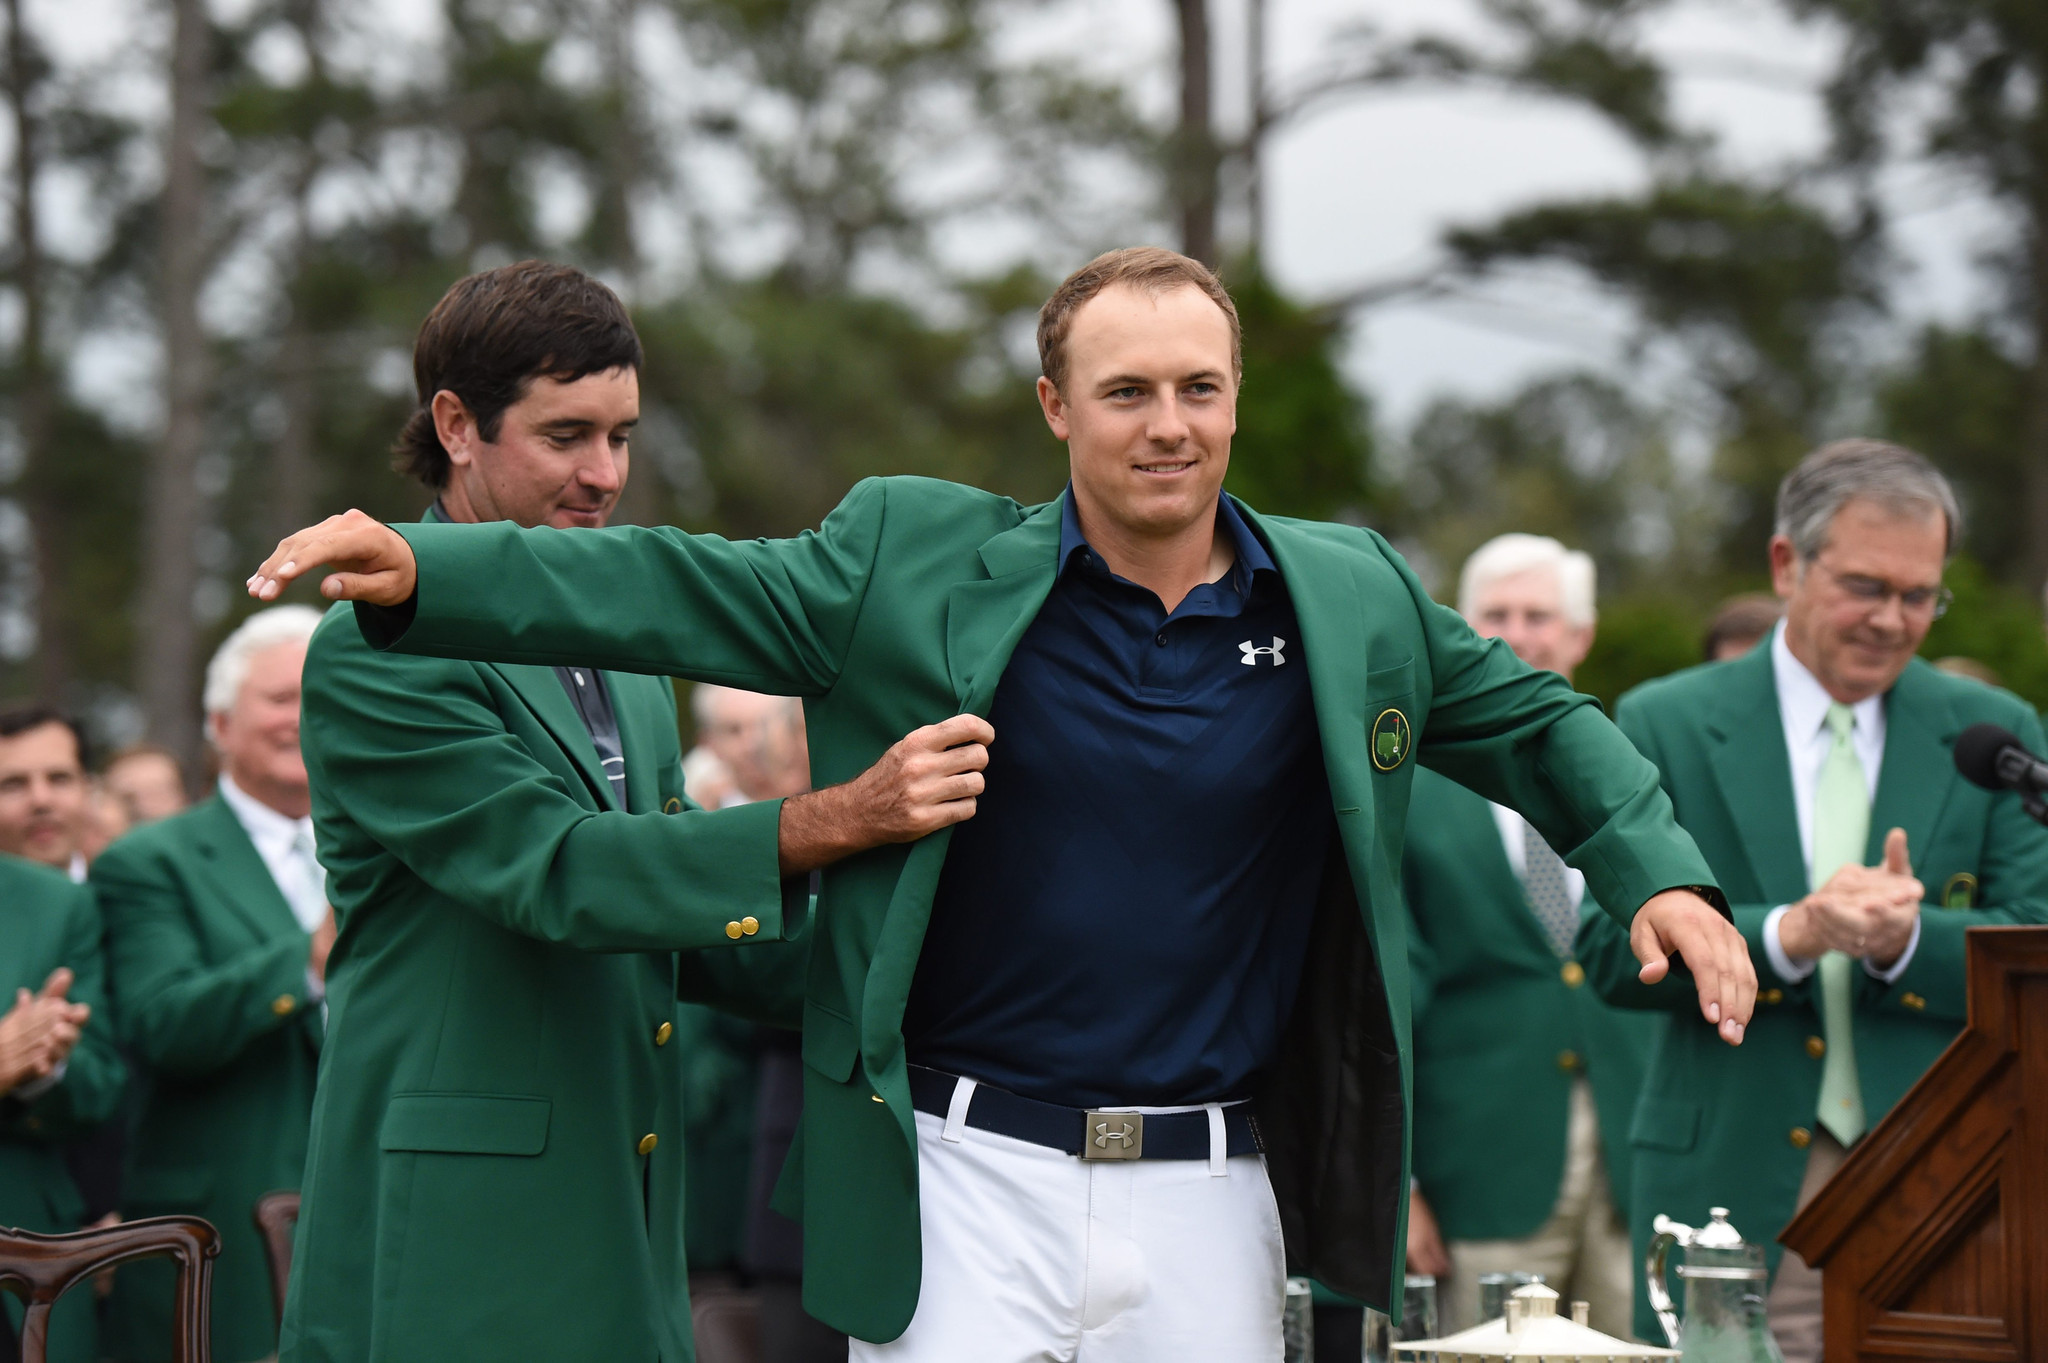 Donated Augusta National member green jacket nets thousands in ...